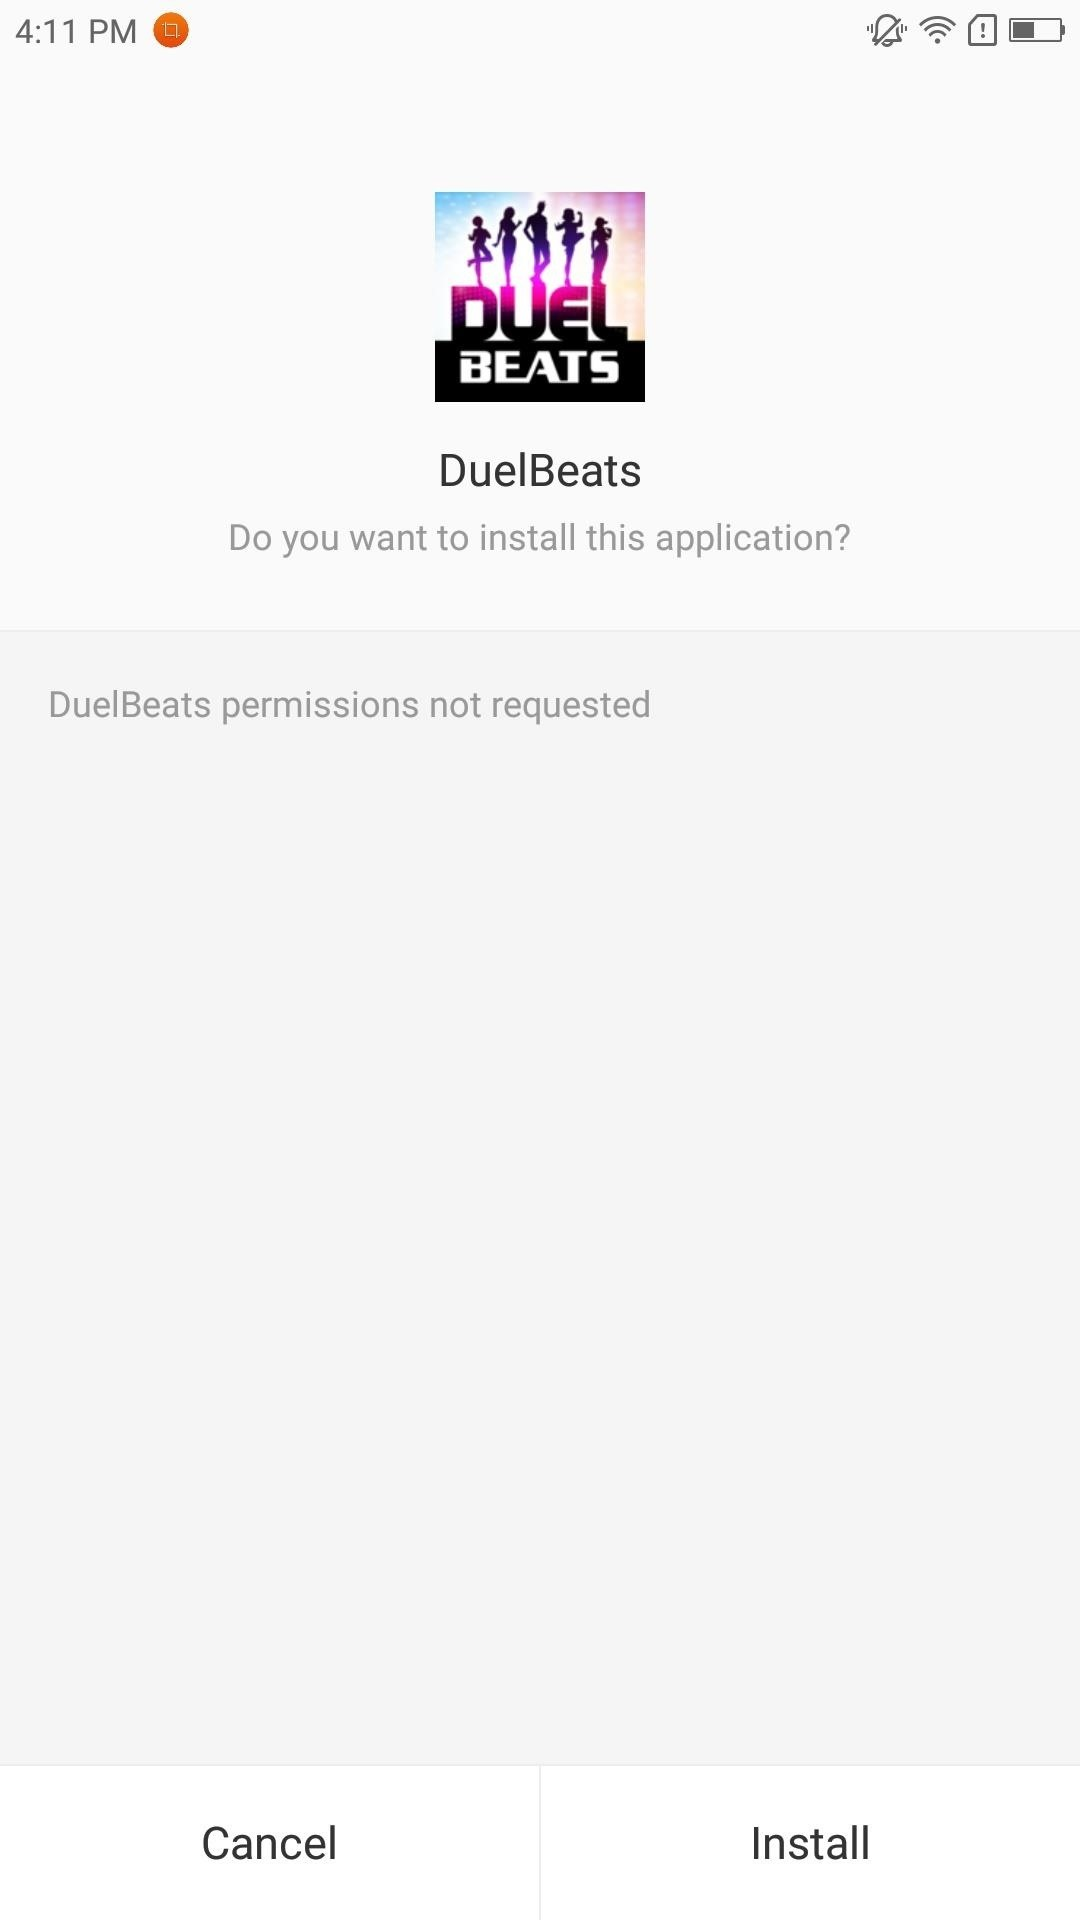 Play DuelBeats on Your iPhone or Android Before Anyone Else